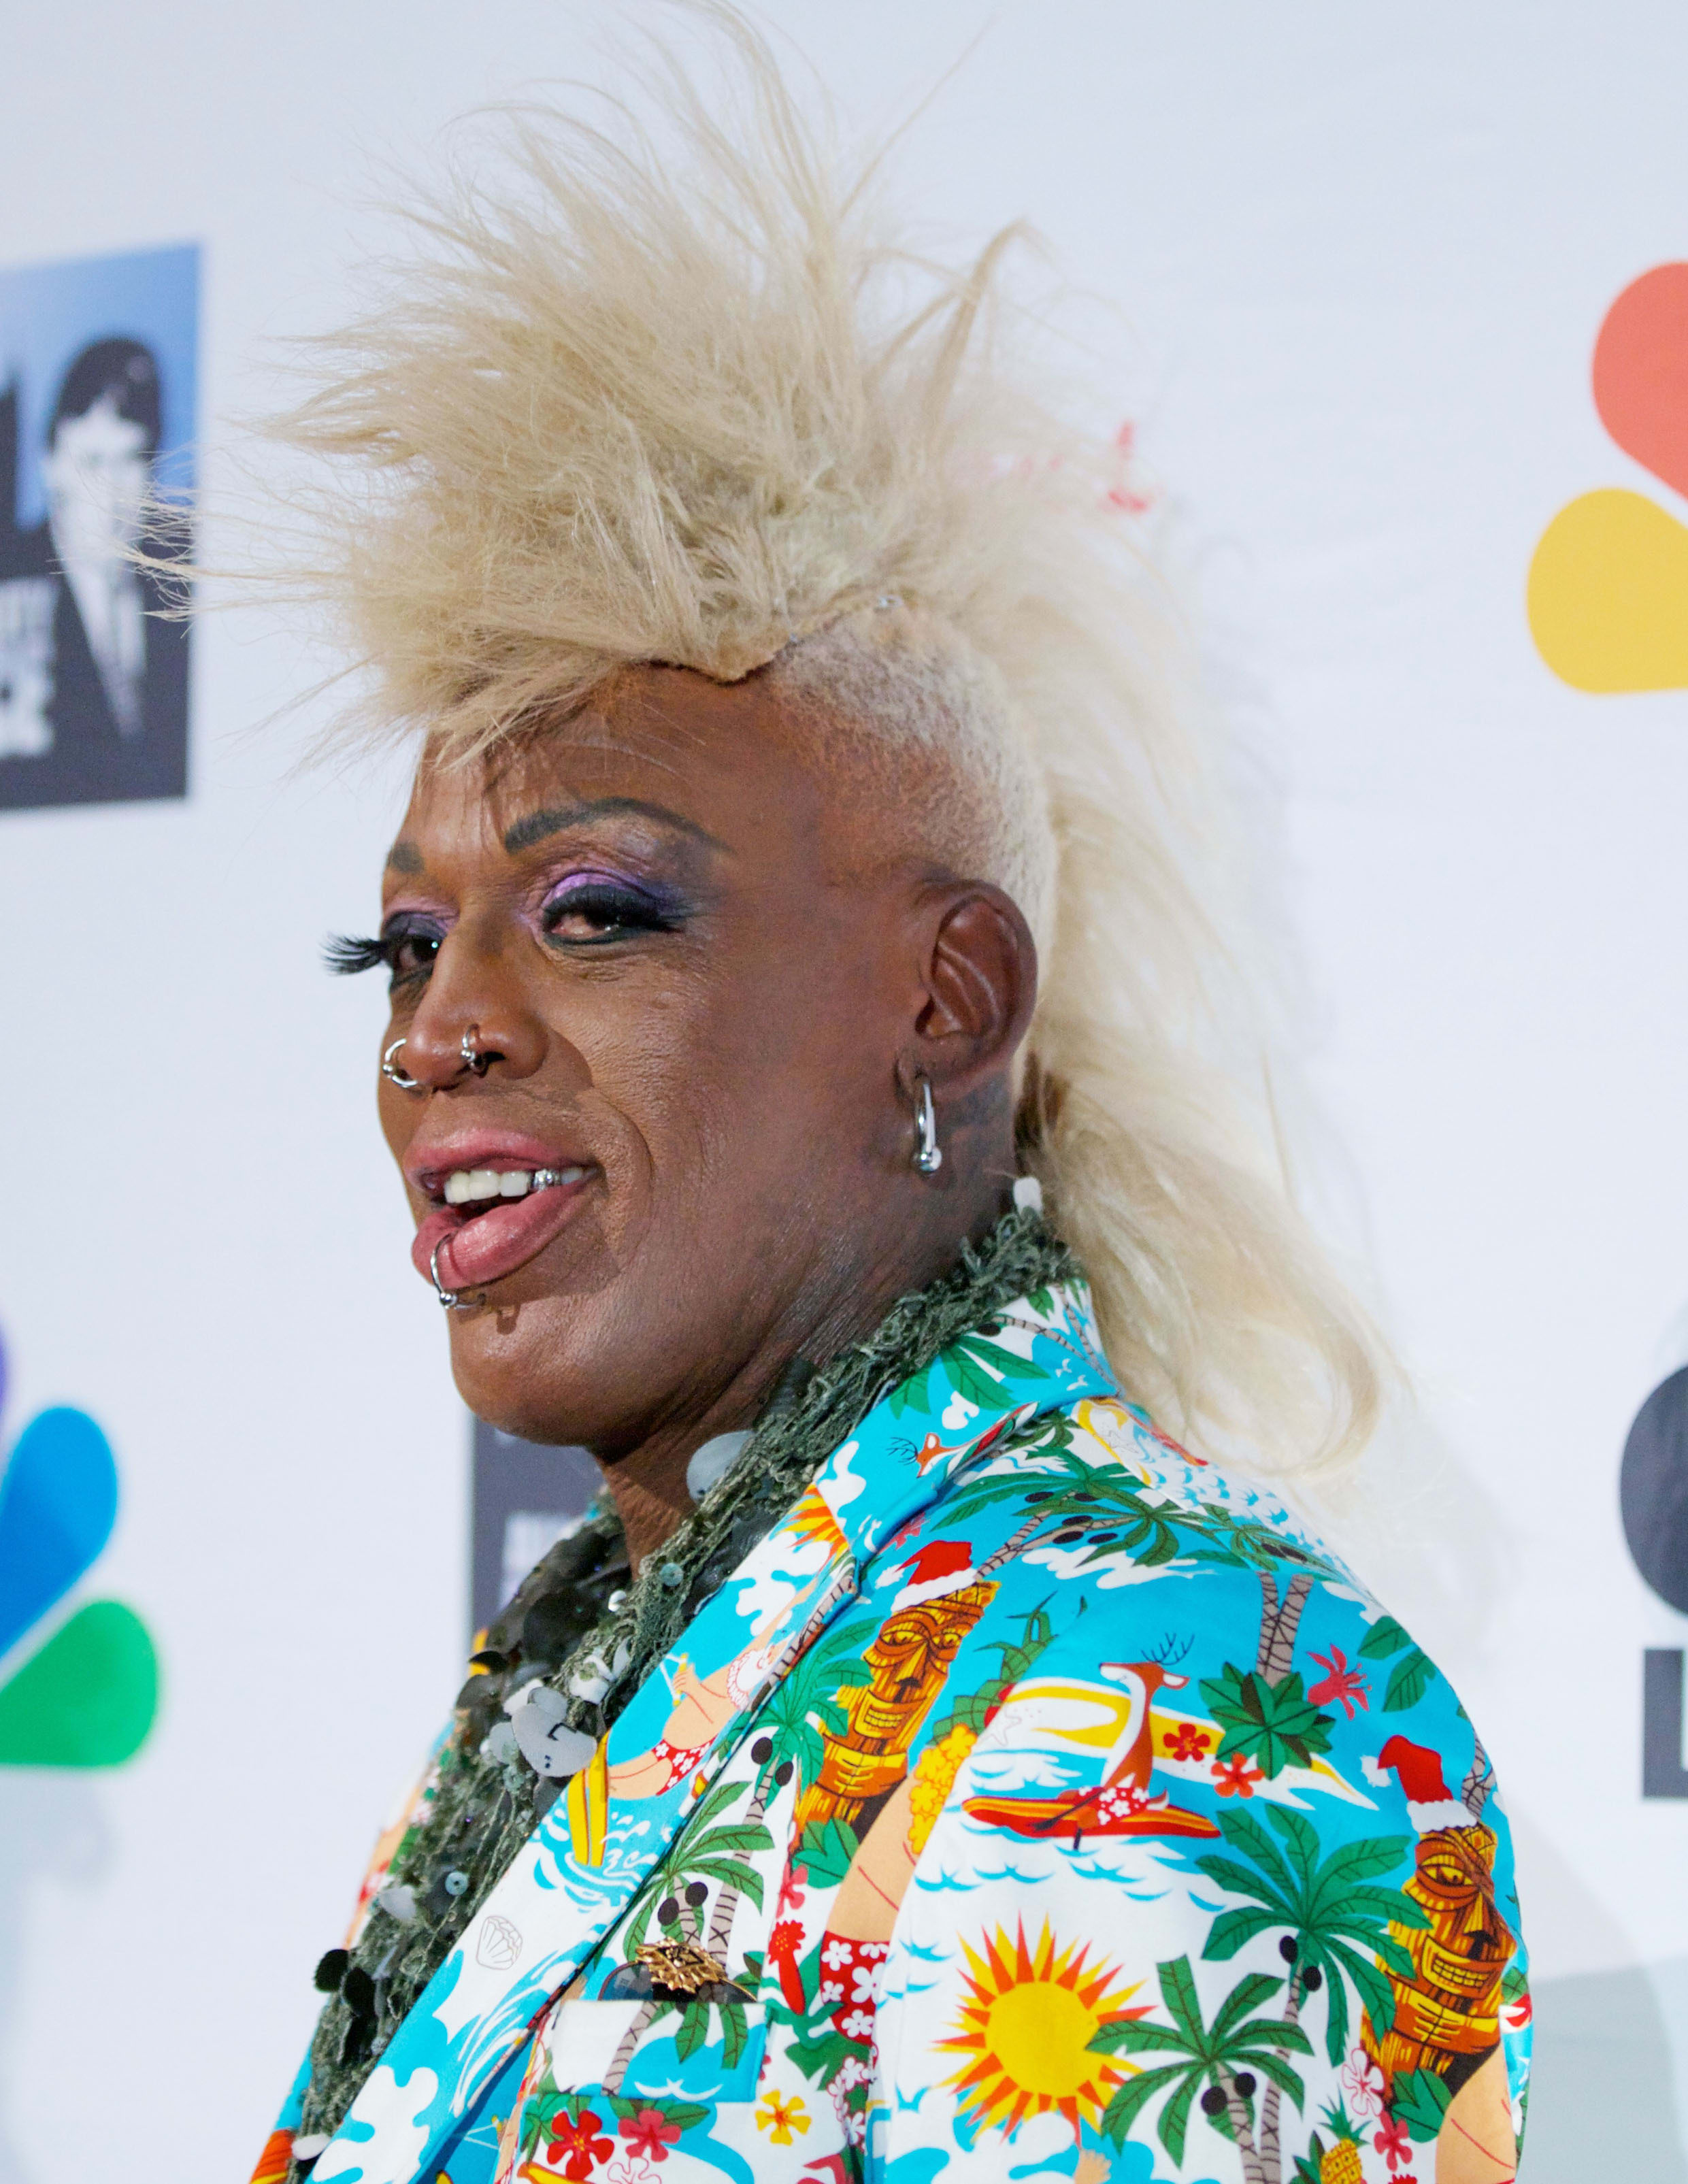 Dennis Rodman Enters Rehab for Alcohol Abuse The Hollywood Gossip